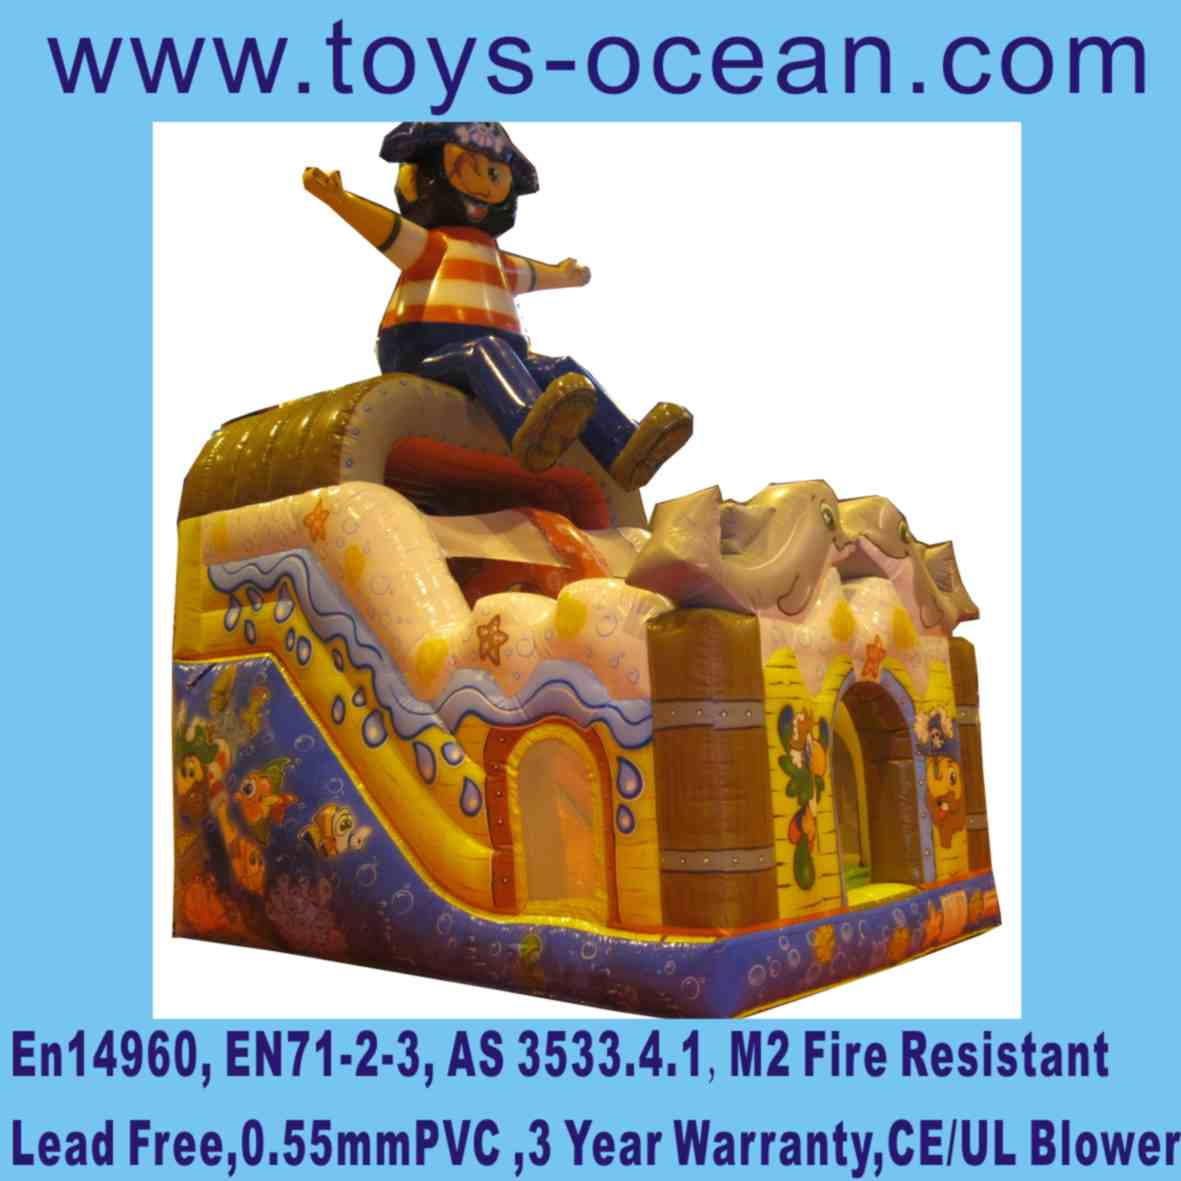 Toys-ocean amusement equipment co ltd